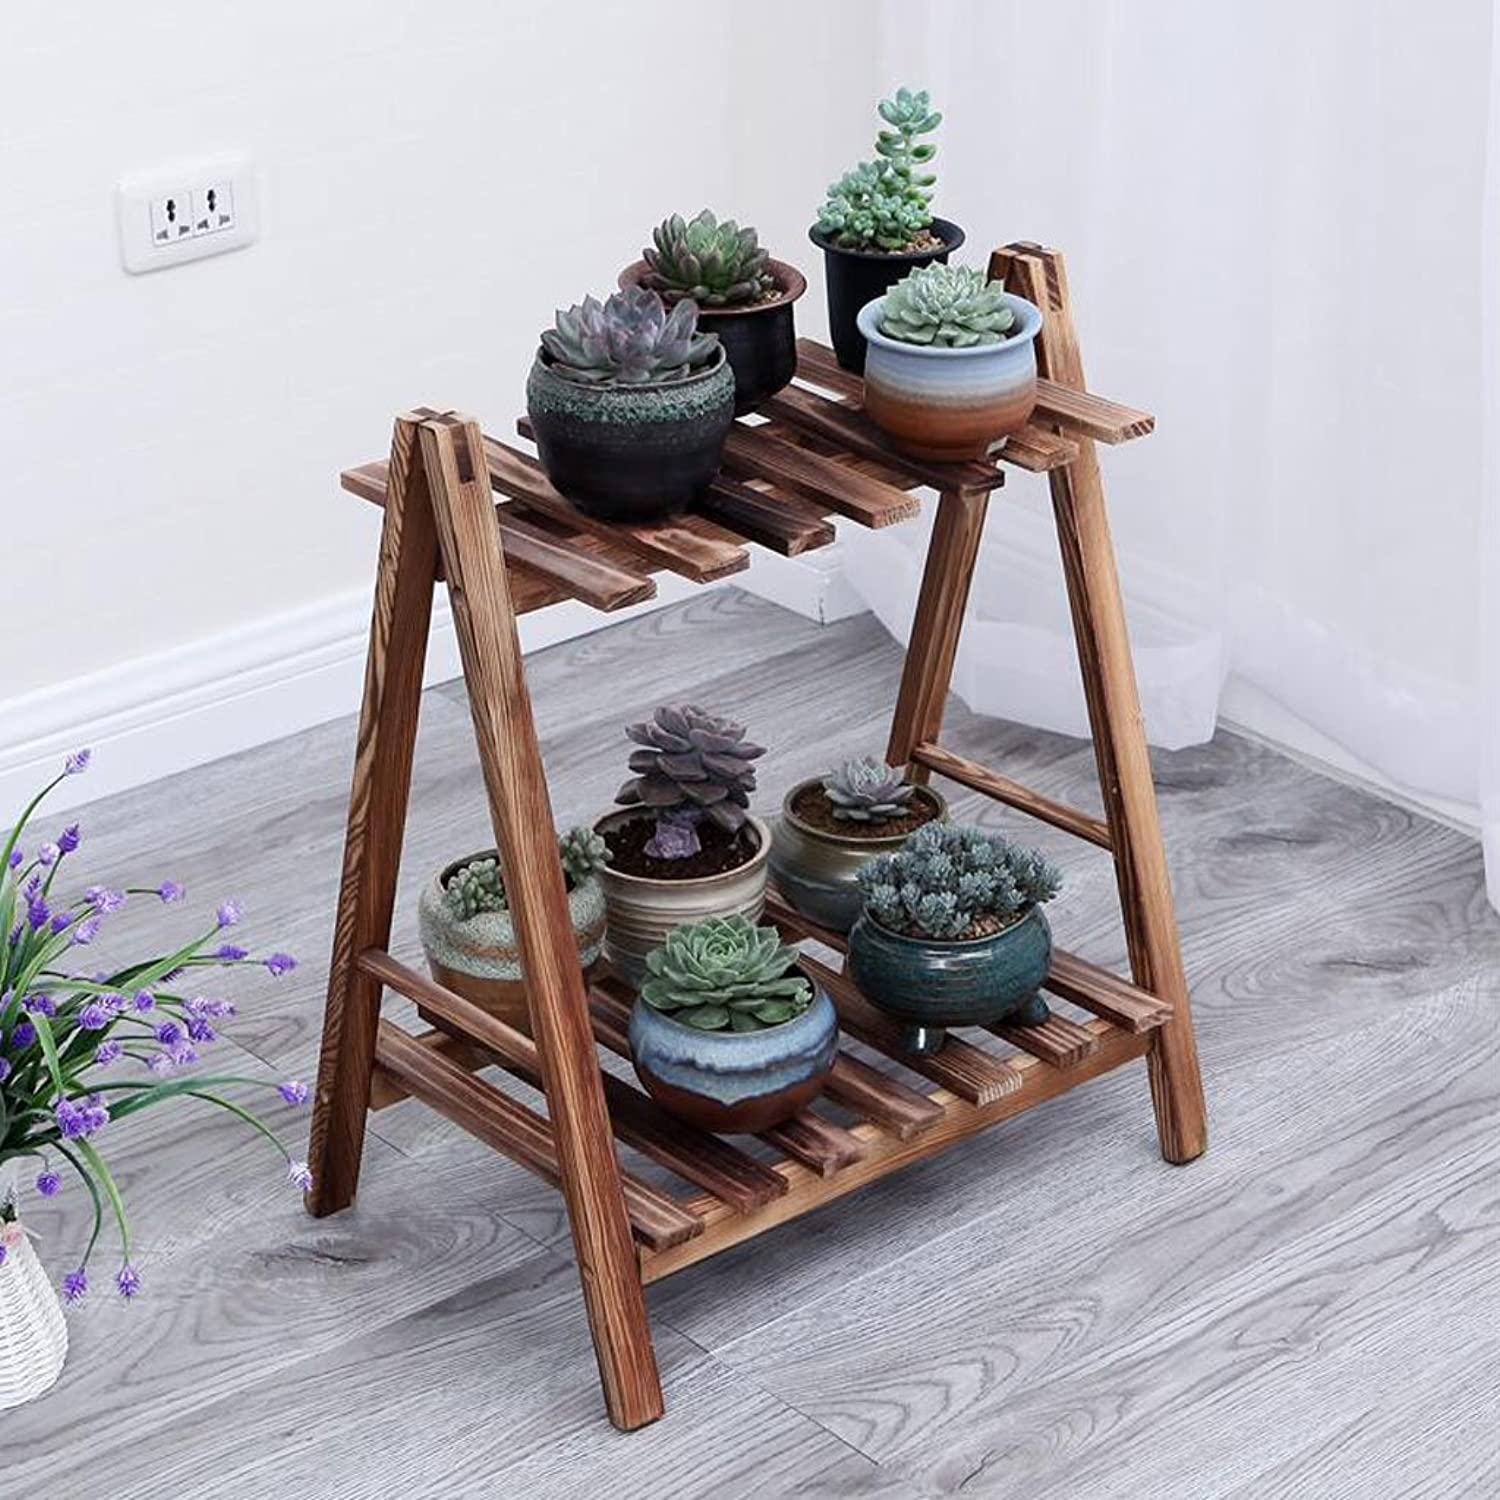 Flower stand Solid Wood flower stand Plant Stand Indoor Balcony flower stand Multi-Layer Floor Shelf Three-Dimensional flower stand (color   Brown, Size   L)